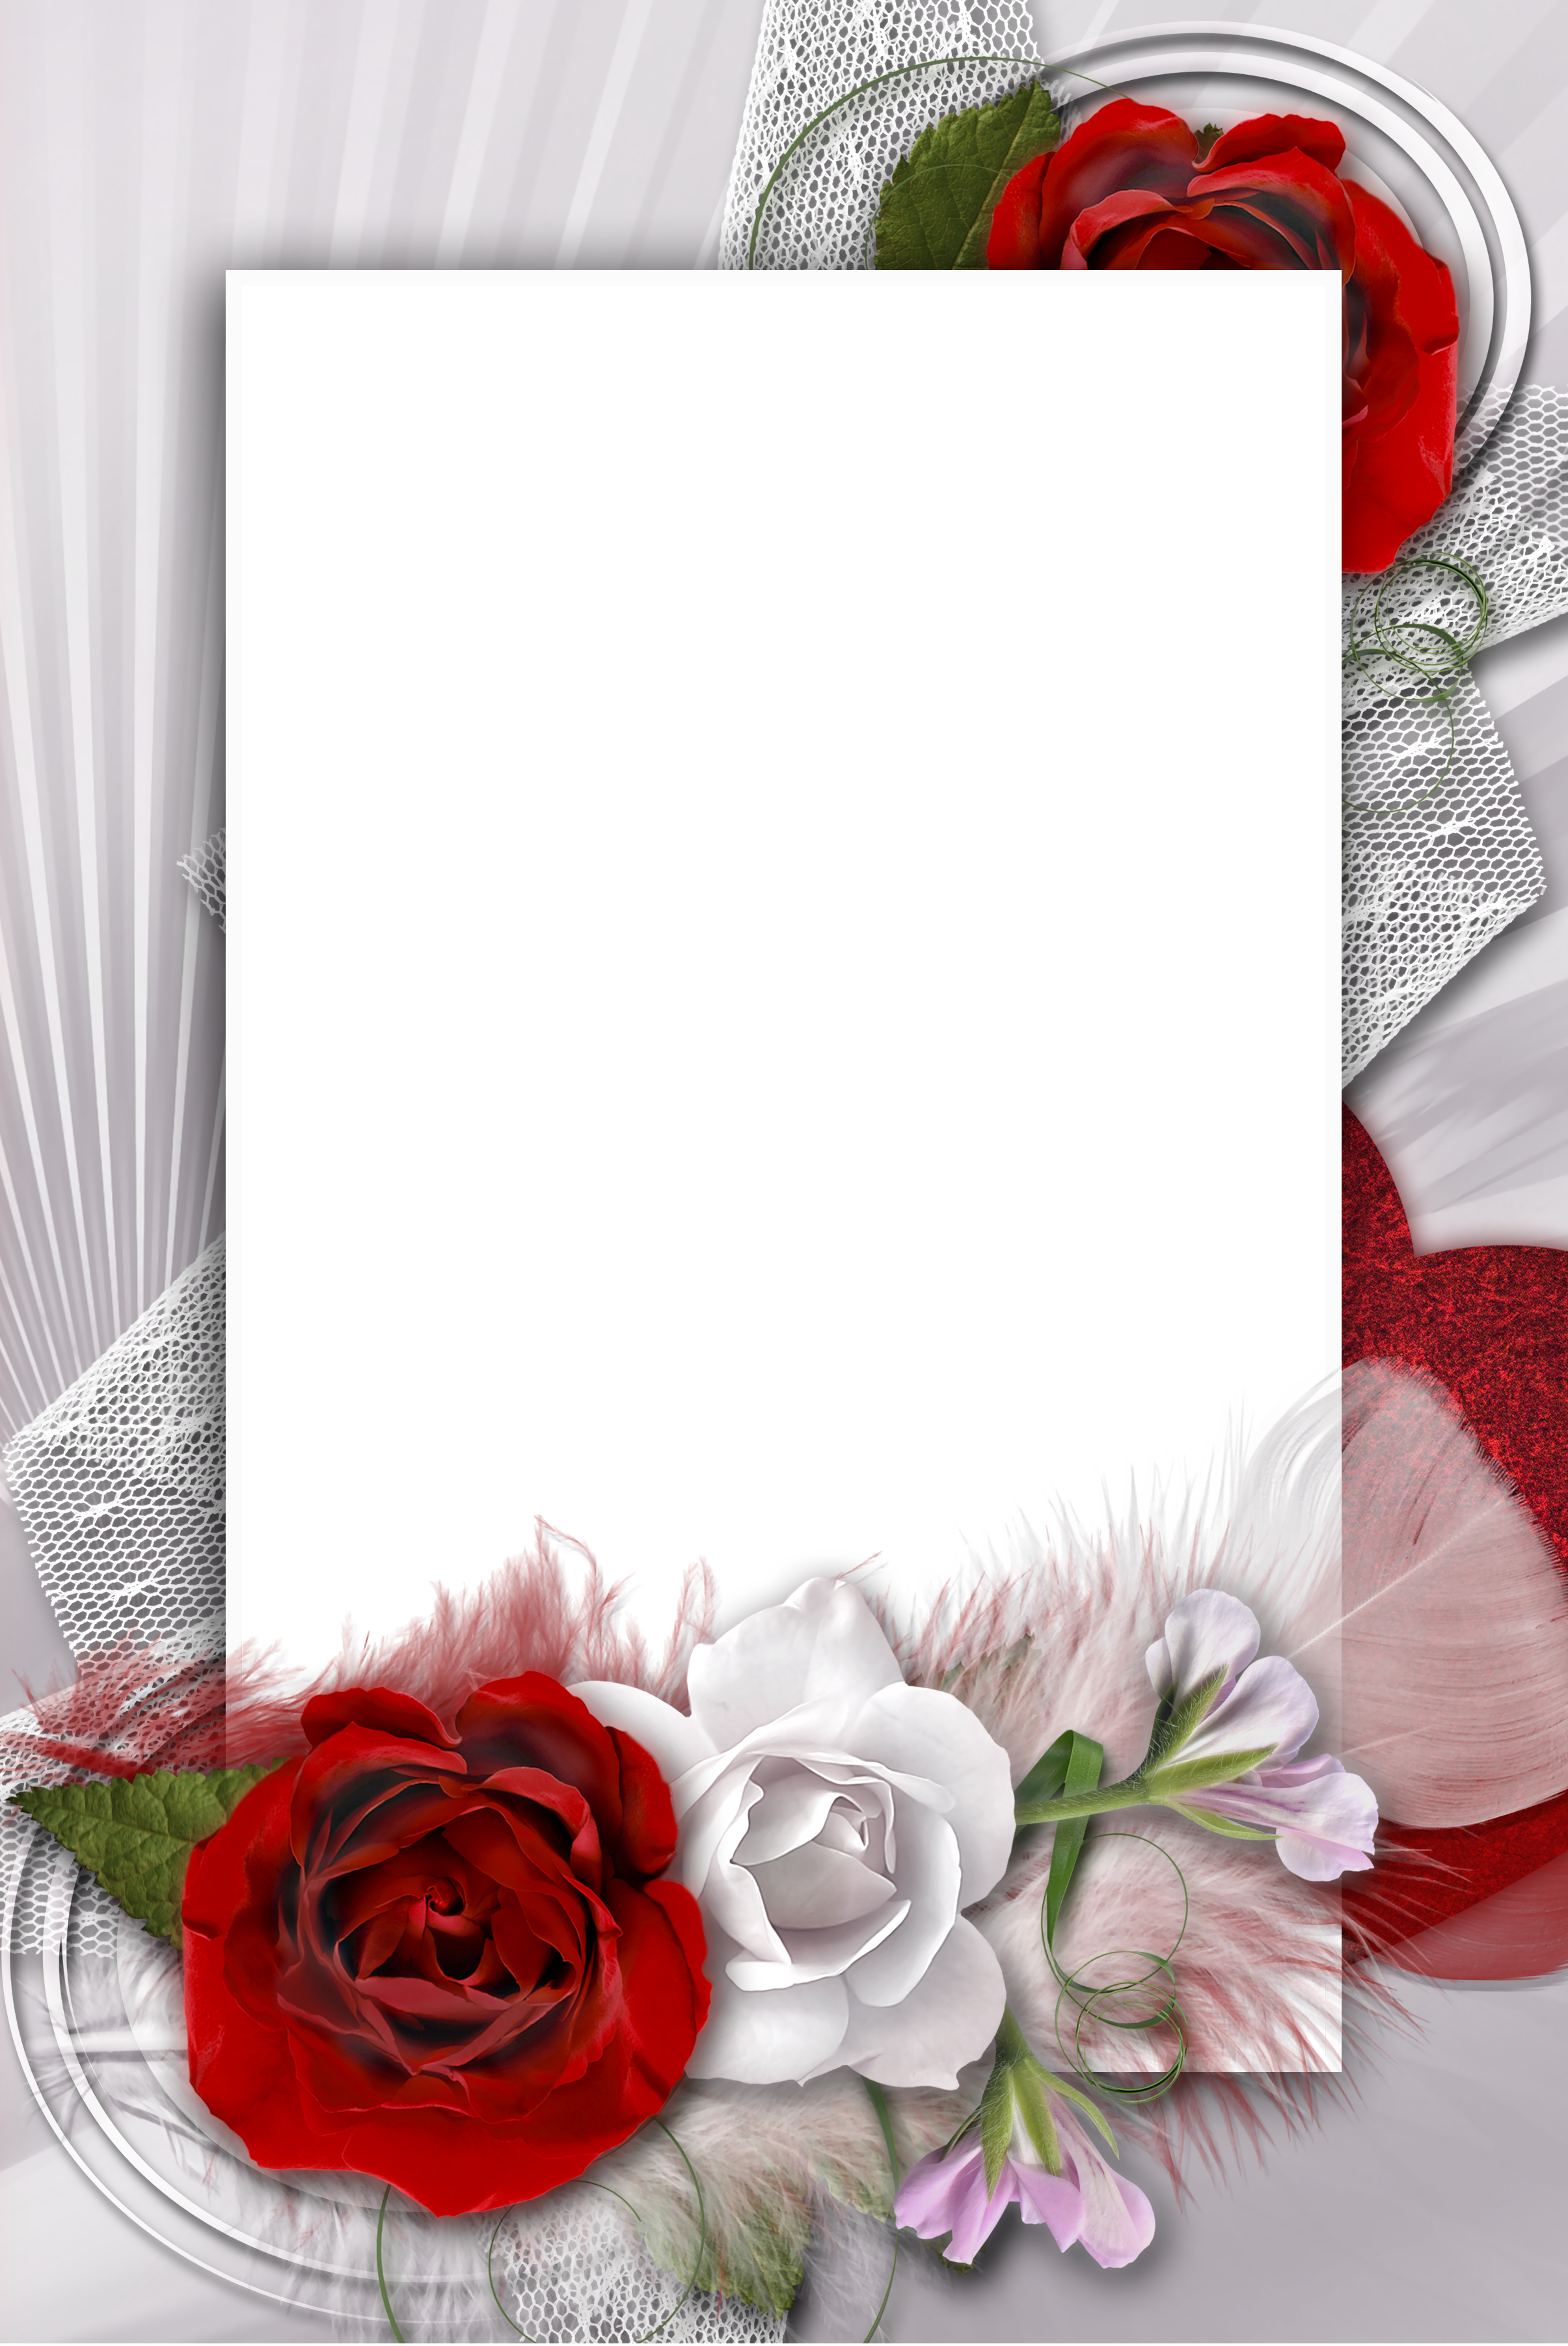 Pin By Uuo U Uouo On 3d Randen En Achtergrond Romantic Frame Flower Frame Floral Border Design